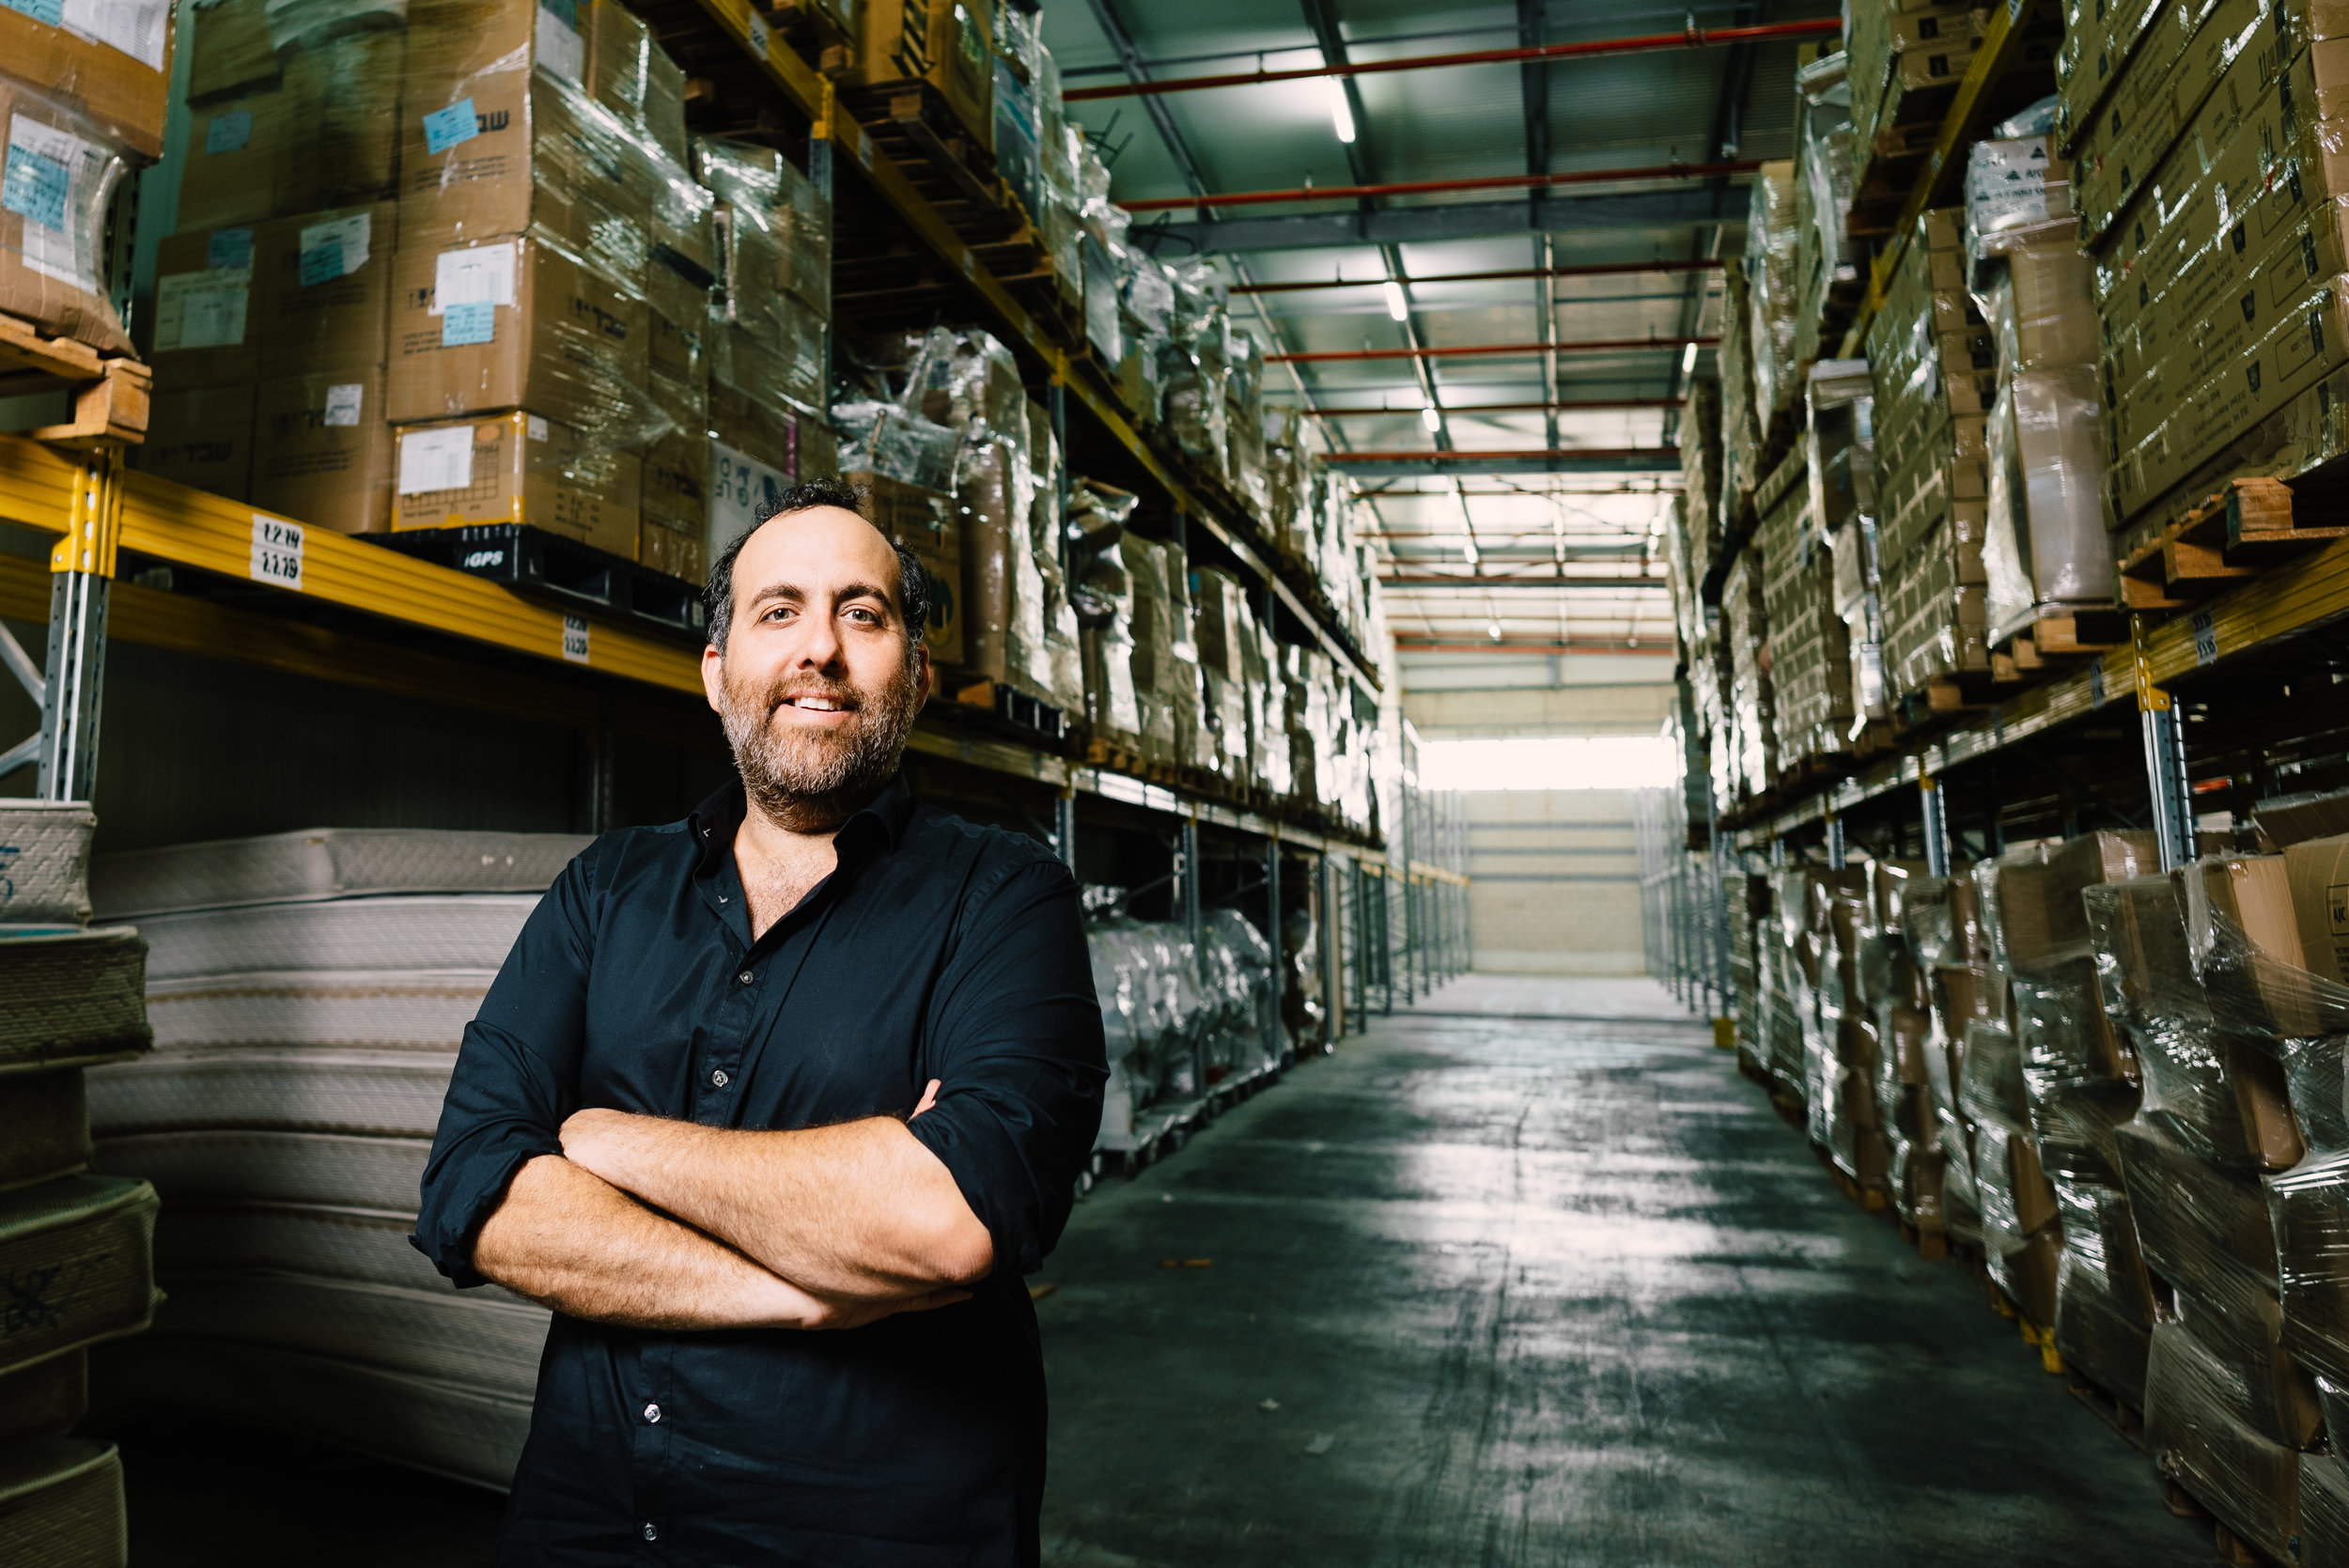 Founder and CEO of Social Delivery Tomer Shemesh at their warehouse of collected surplus goods in Israel.